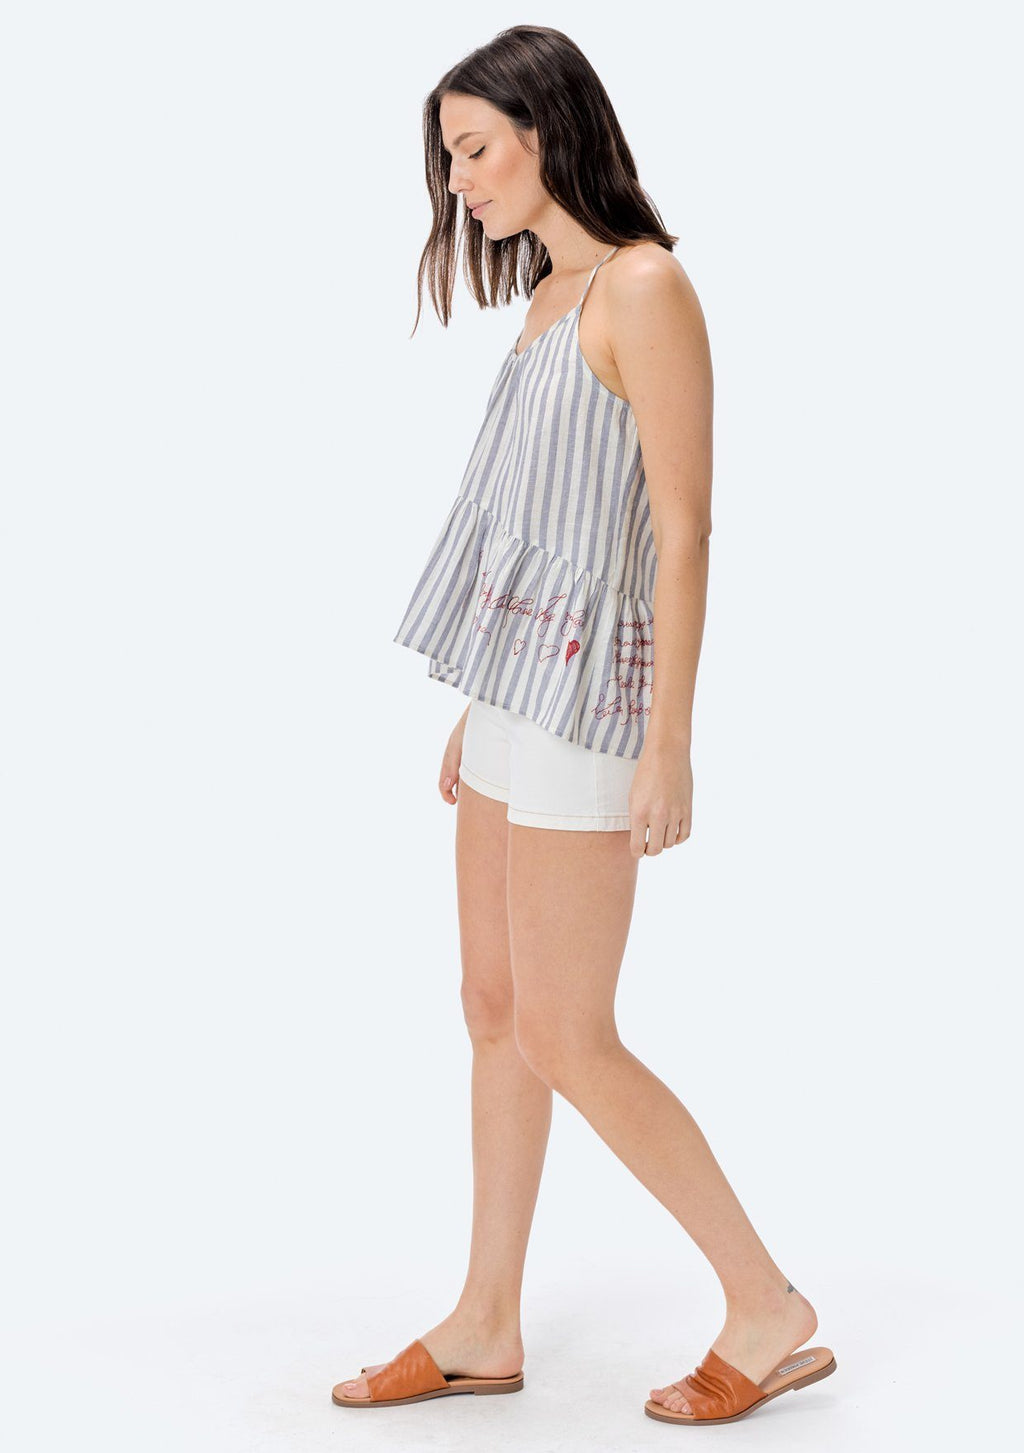 LOVESTITCH, TOP, LOVESTITCH| Yarn Dye Stripe Tie Back Tank Top with Embroidery and Ruffle Hem - Edgar Martha's Vineyard